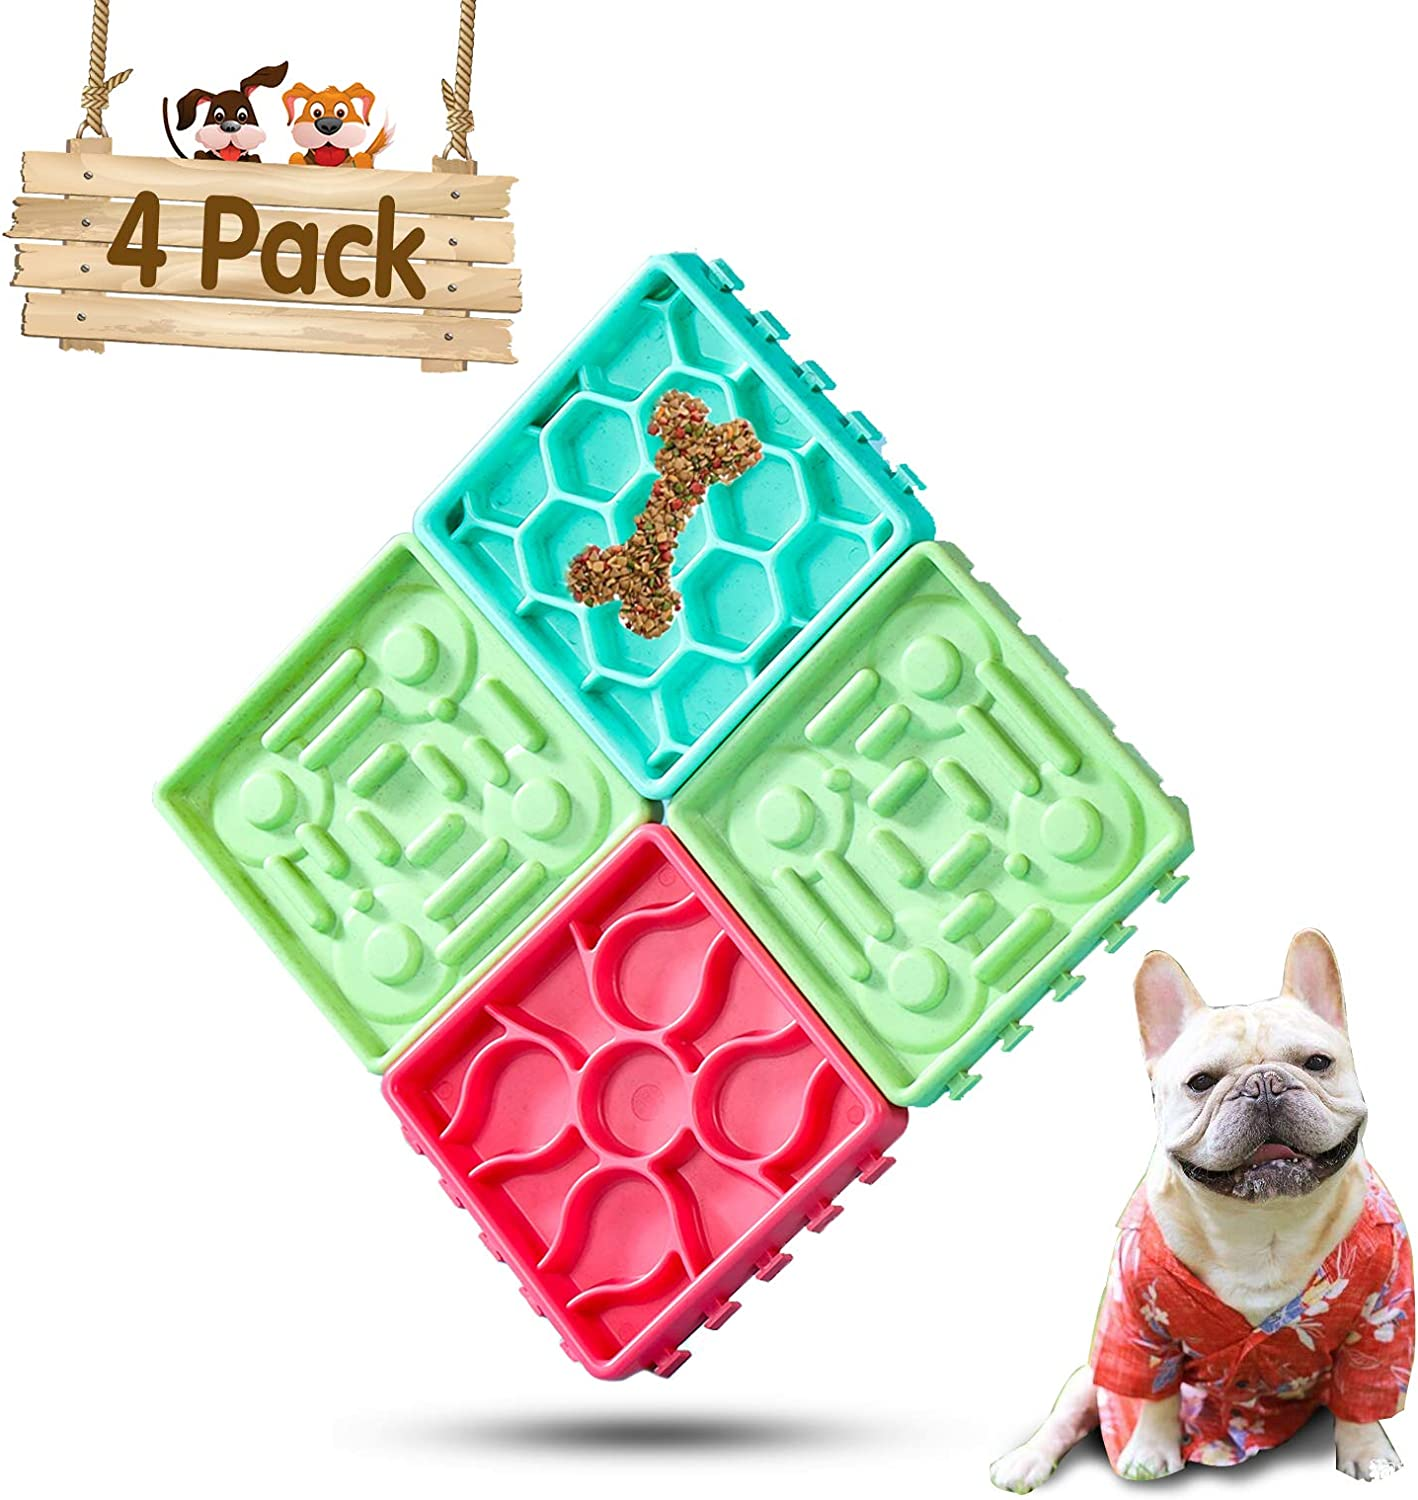 PetsBark 4 Pack Dog Bowl Slow Feeder Peanut Butter Lick Mat, No Chocking Feeding Bowl for Cats, Dogs and Other Pets, Lick Plate and Treats Slow Feed Bowl Can be Assembled or Disassembled